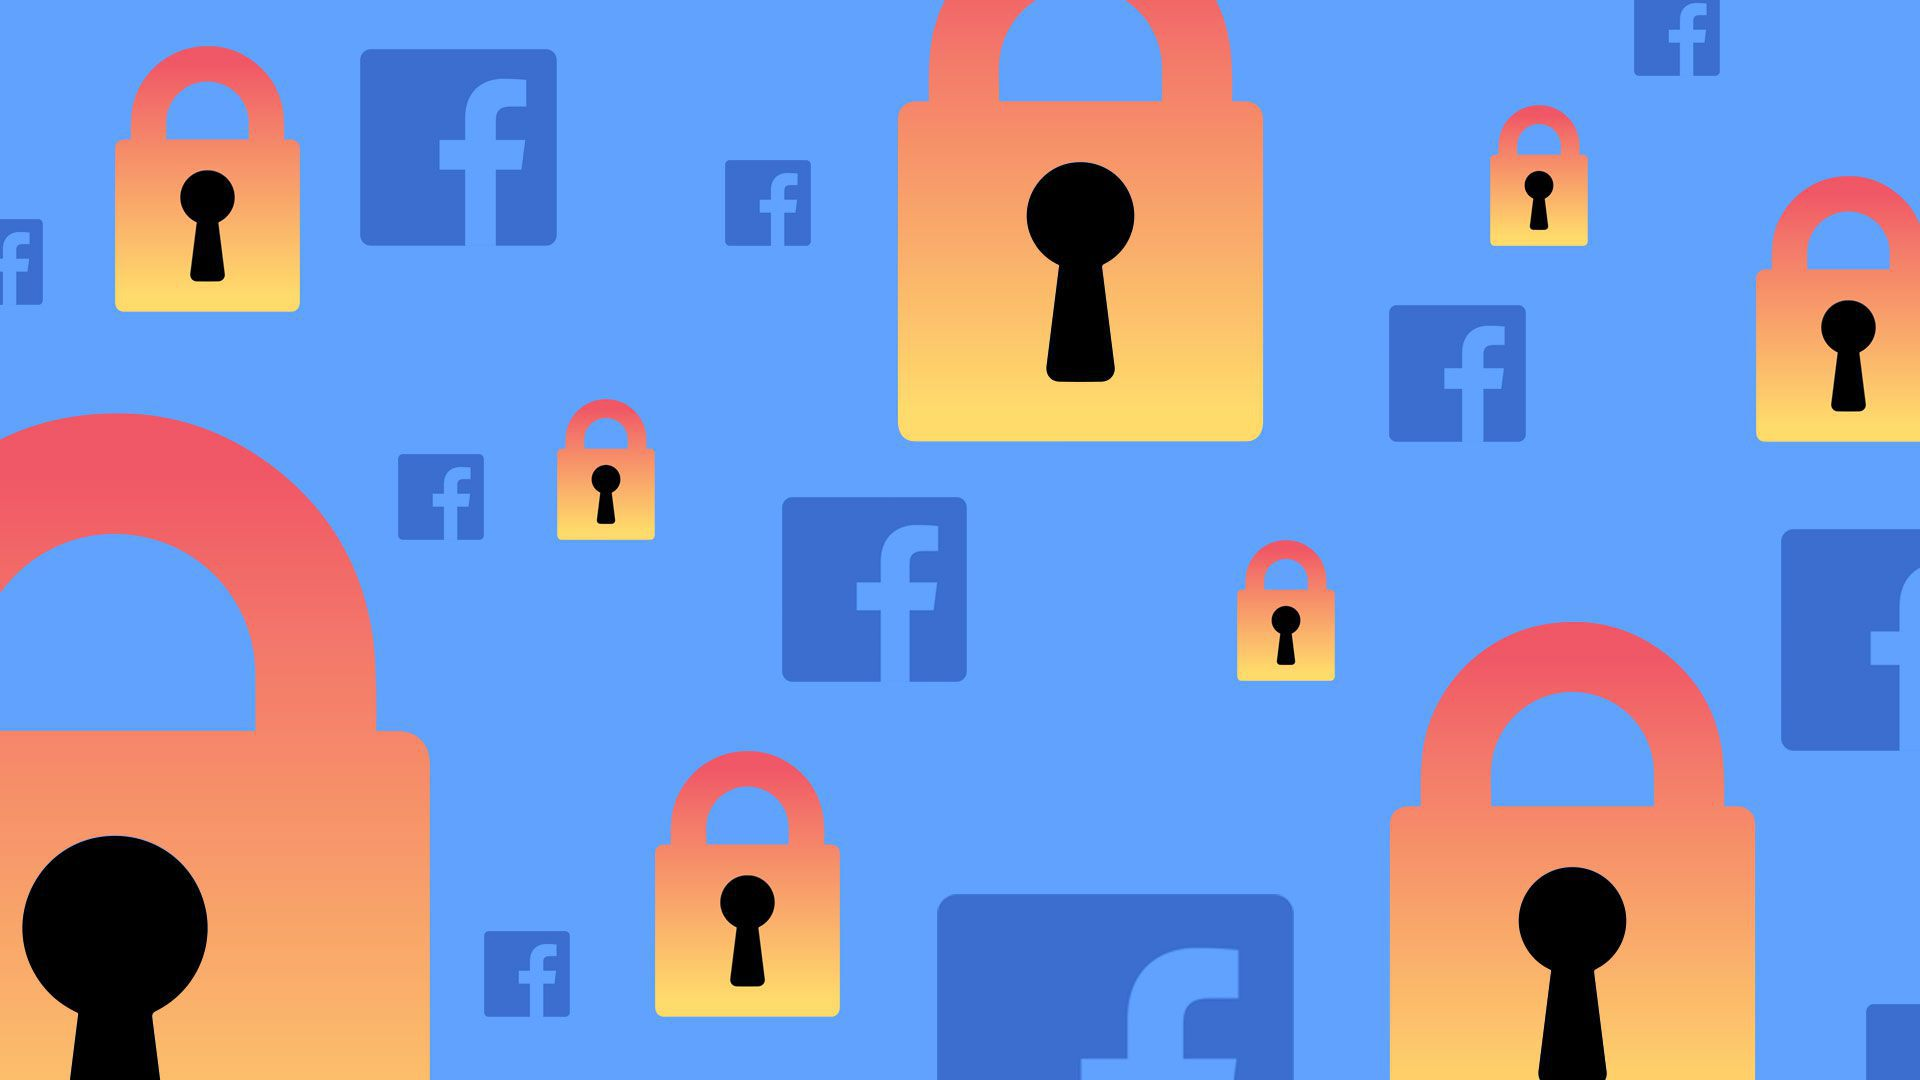 an illustration of Facebook and security